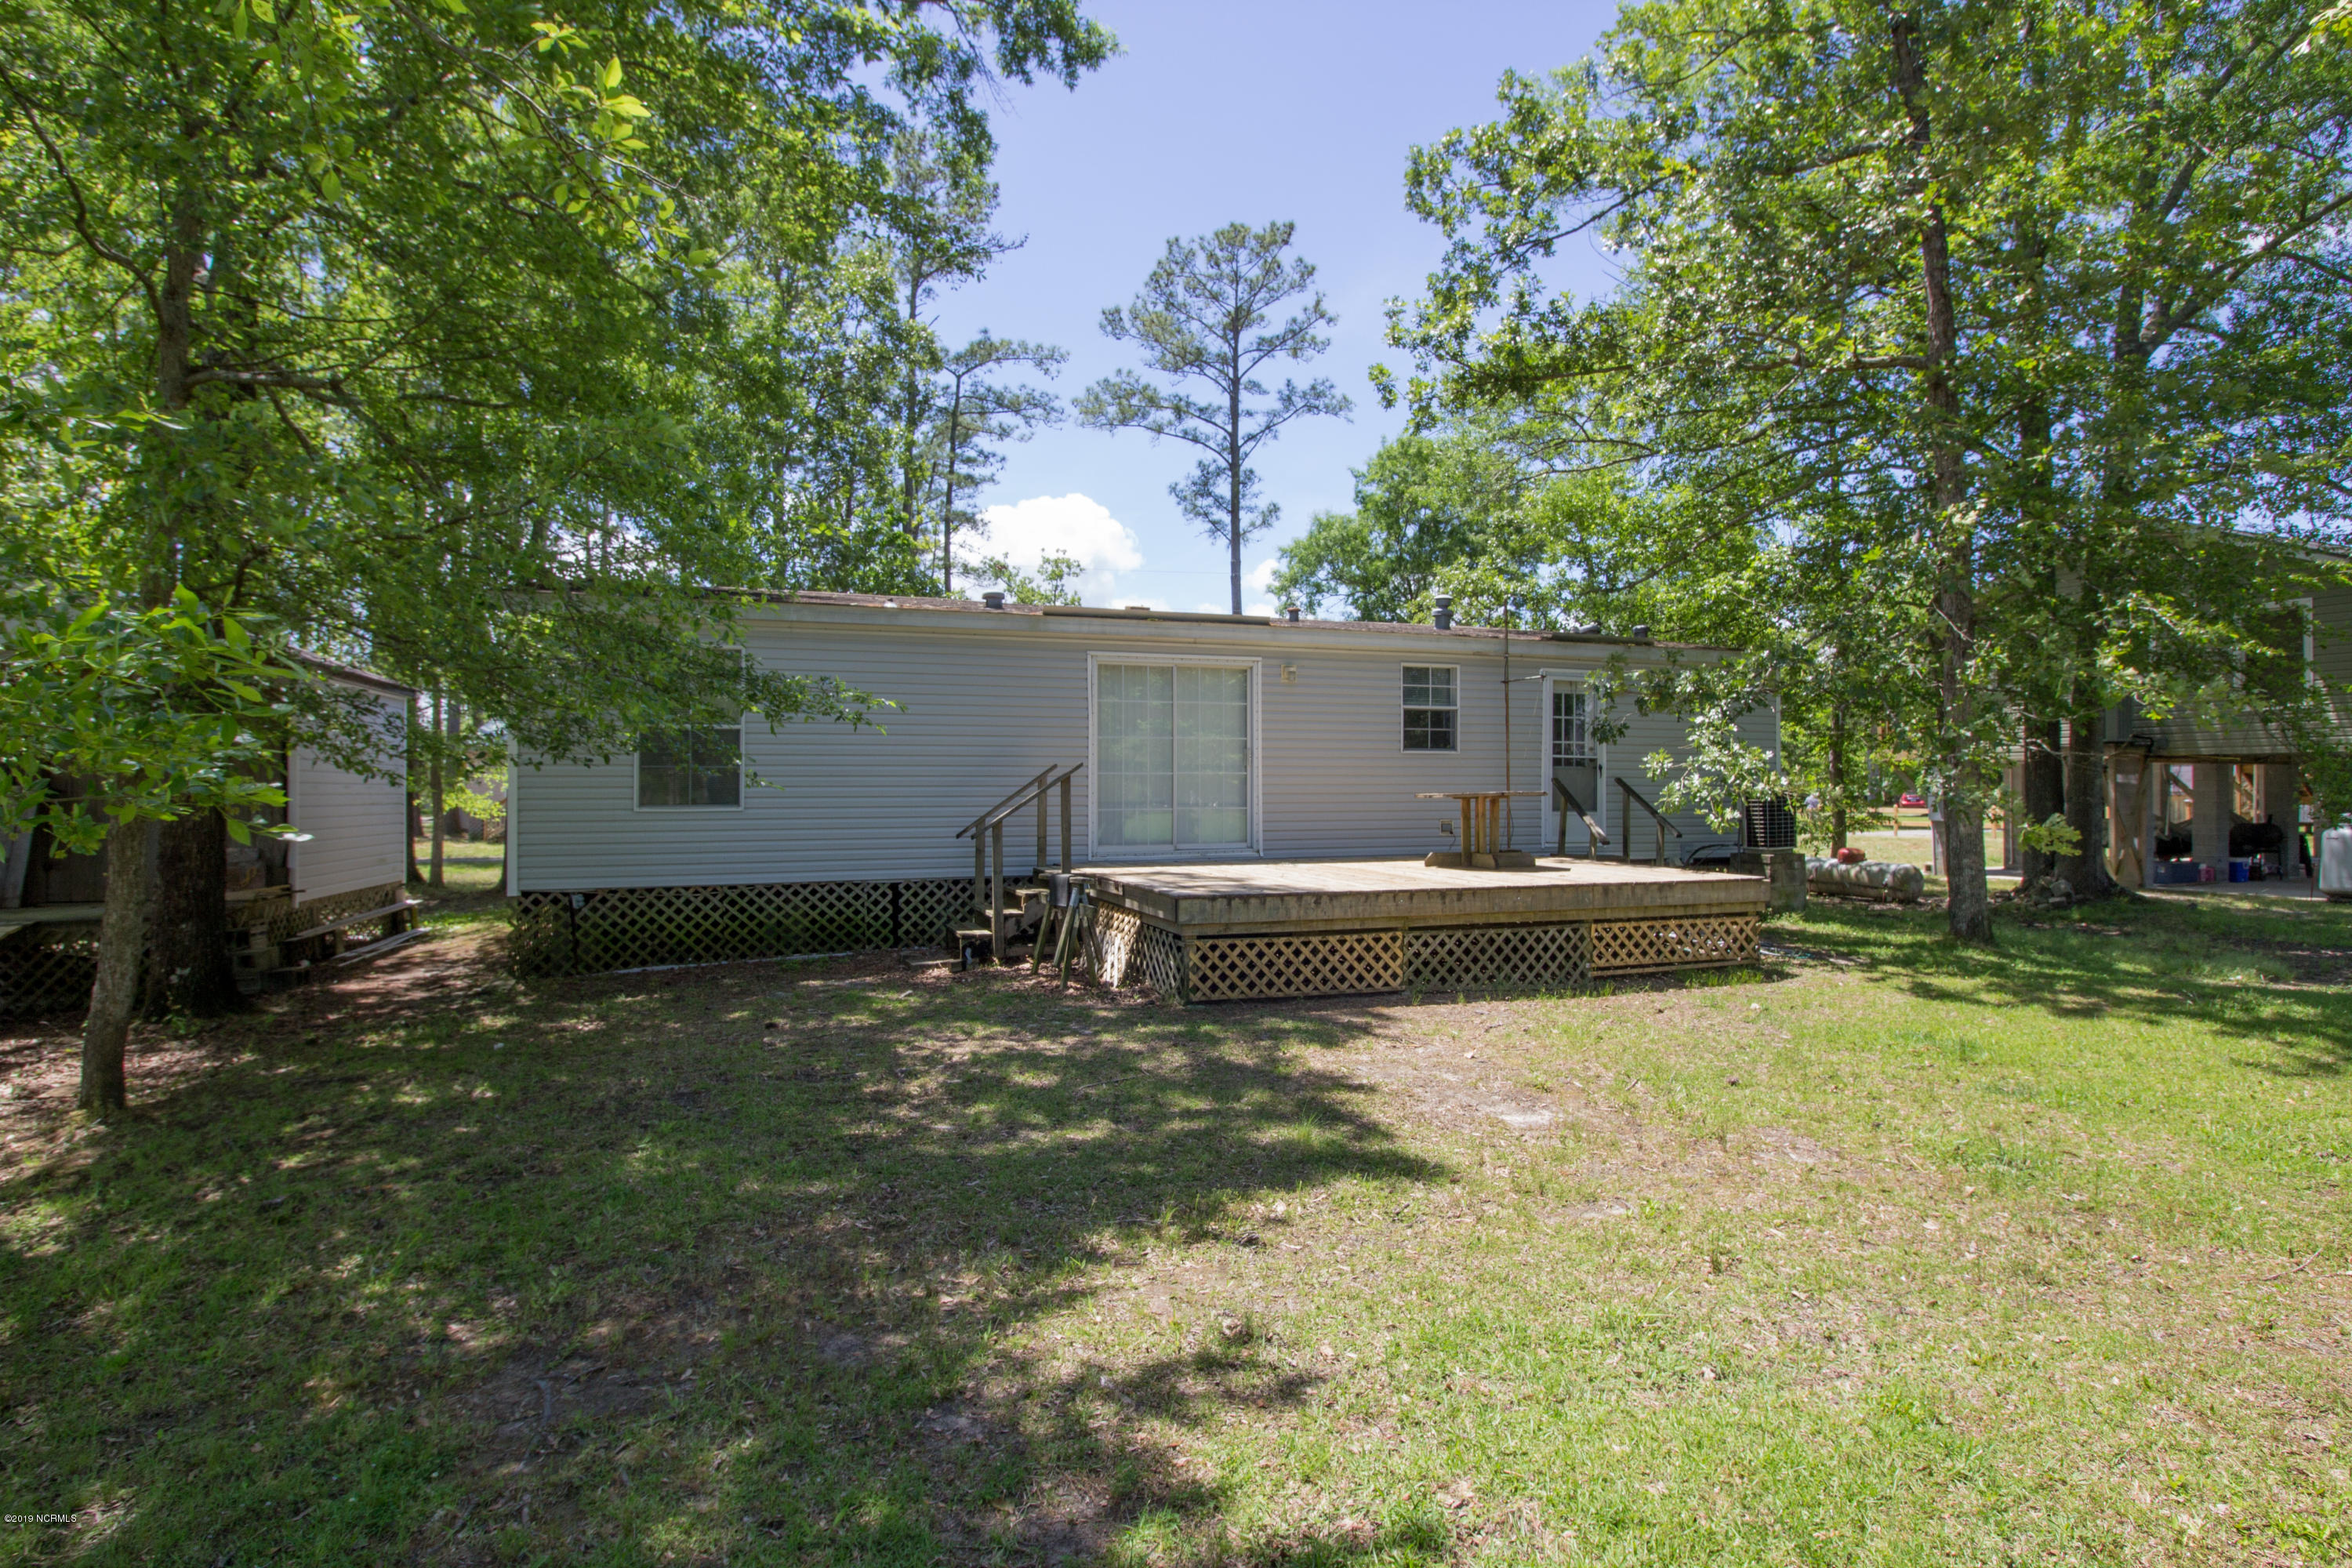 47 Point Avenue, Belhaven, North Carolina 27810, 3 Bedrooms Bedrooms, 7 Rooms Rooms,2 BathroomsBathrooms,Manufactured home,For sale,Point,100134258